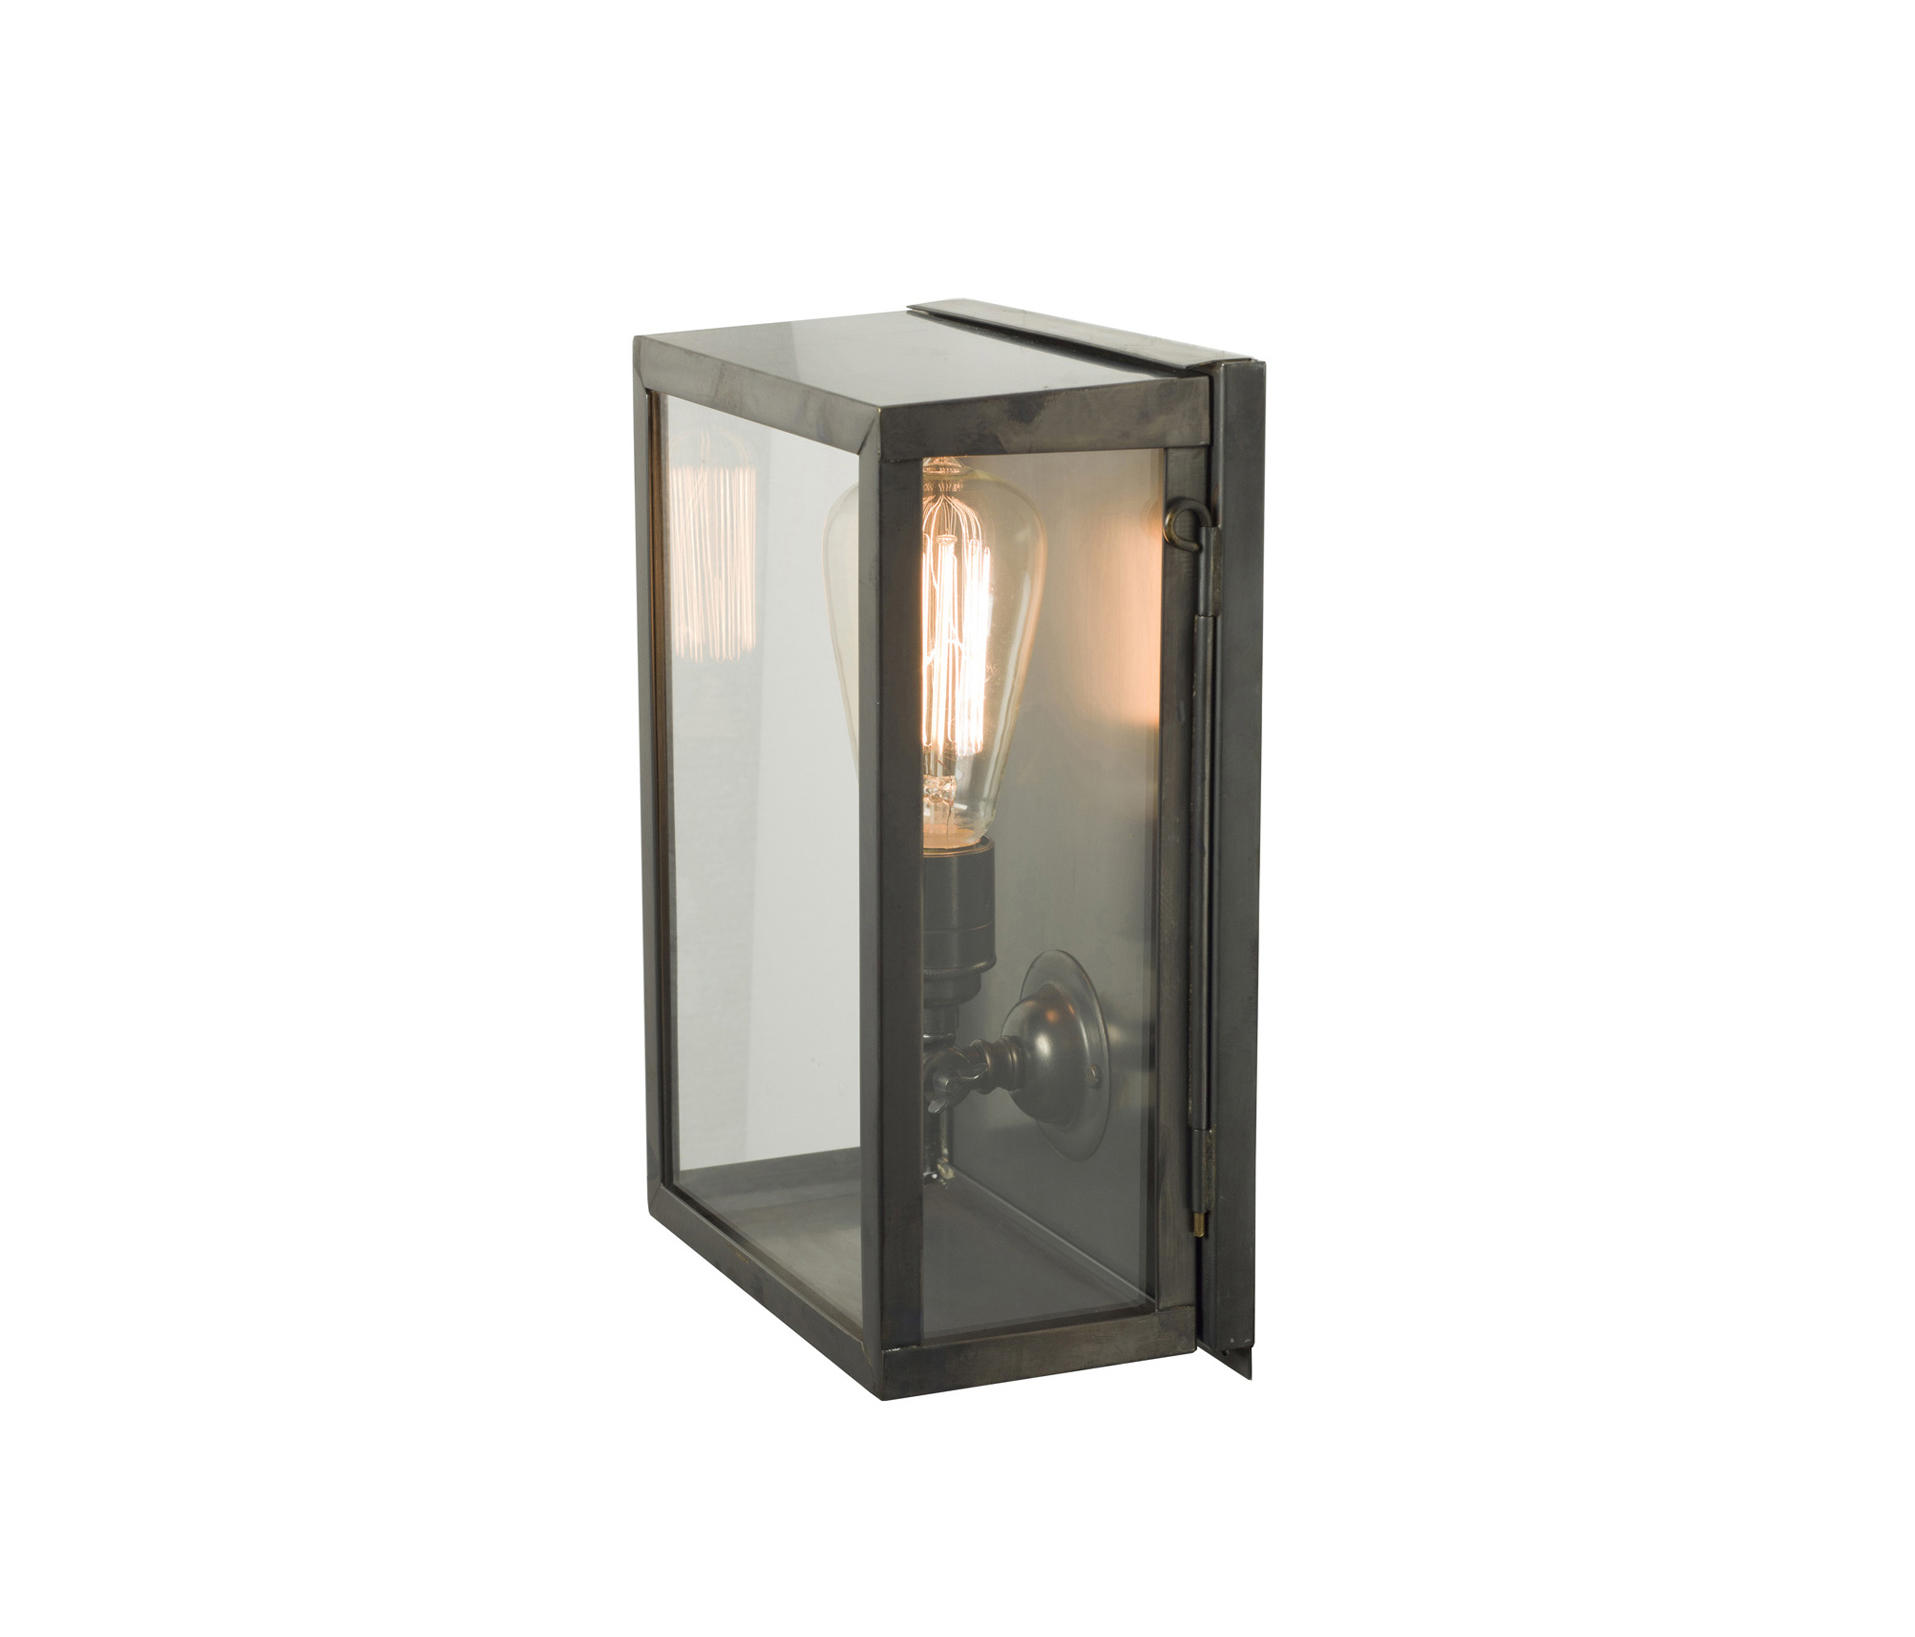 Glass Box Wall Lights : 7644 BOX WALL LIGHT, INTERNAL GLASS, SMALL, WEATHERED BRASS, CLEAR GLASS - General lighting from..